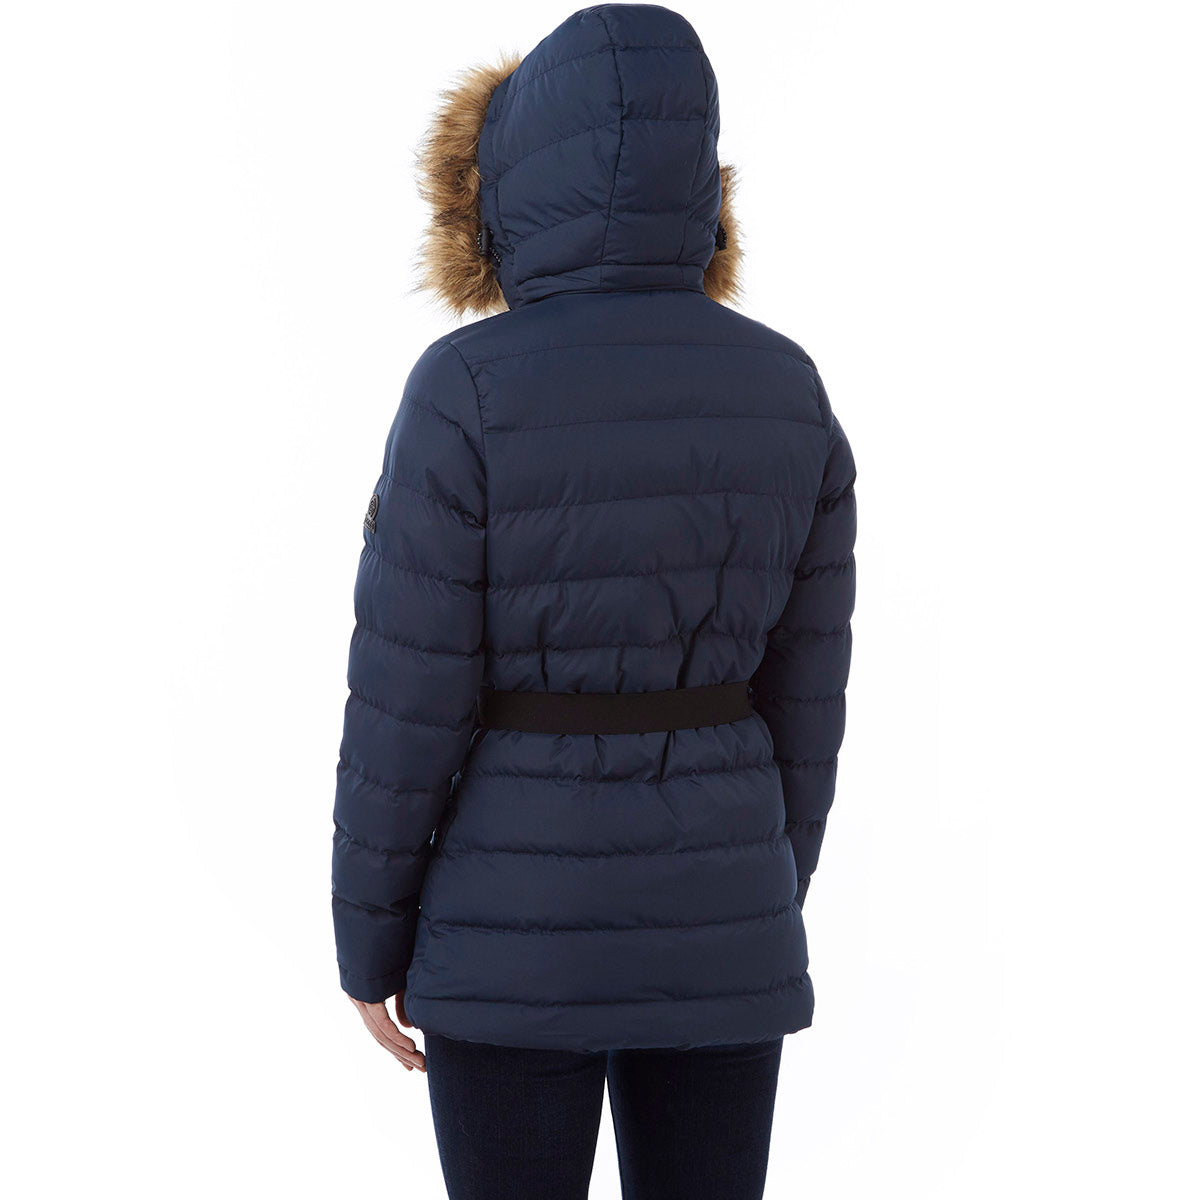 Blake Womens TCZ Thermal Jacket - Navy image 4